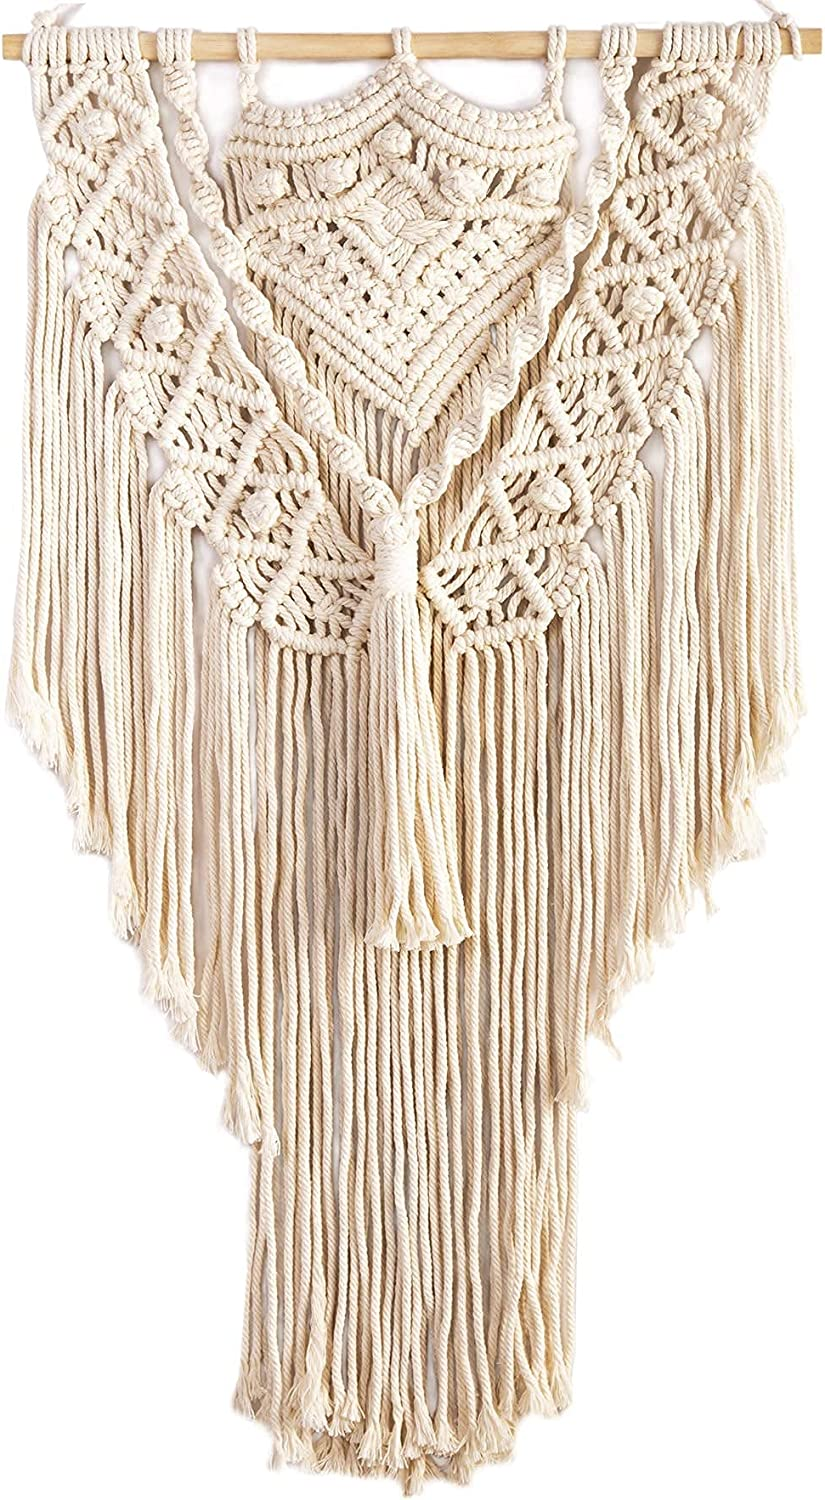 Macrame Wall Hanging Boho Home Tapestry-3 Decor Cotton Handwoven Super intense SALE Challenge the lowest price